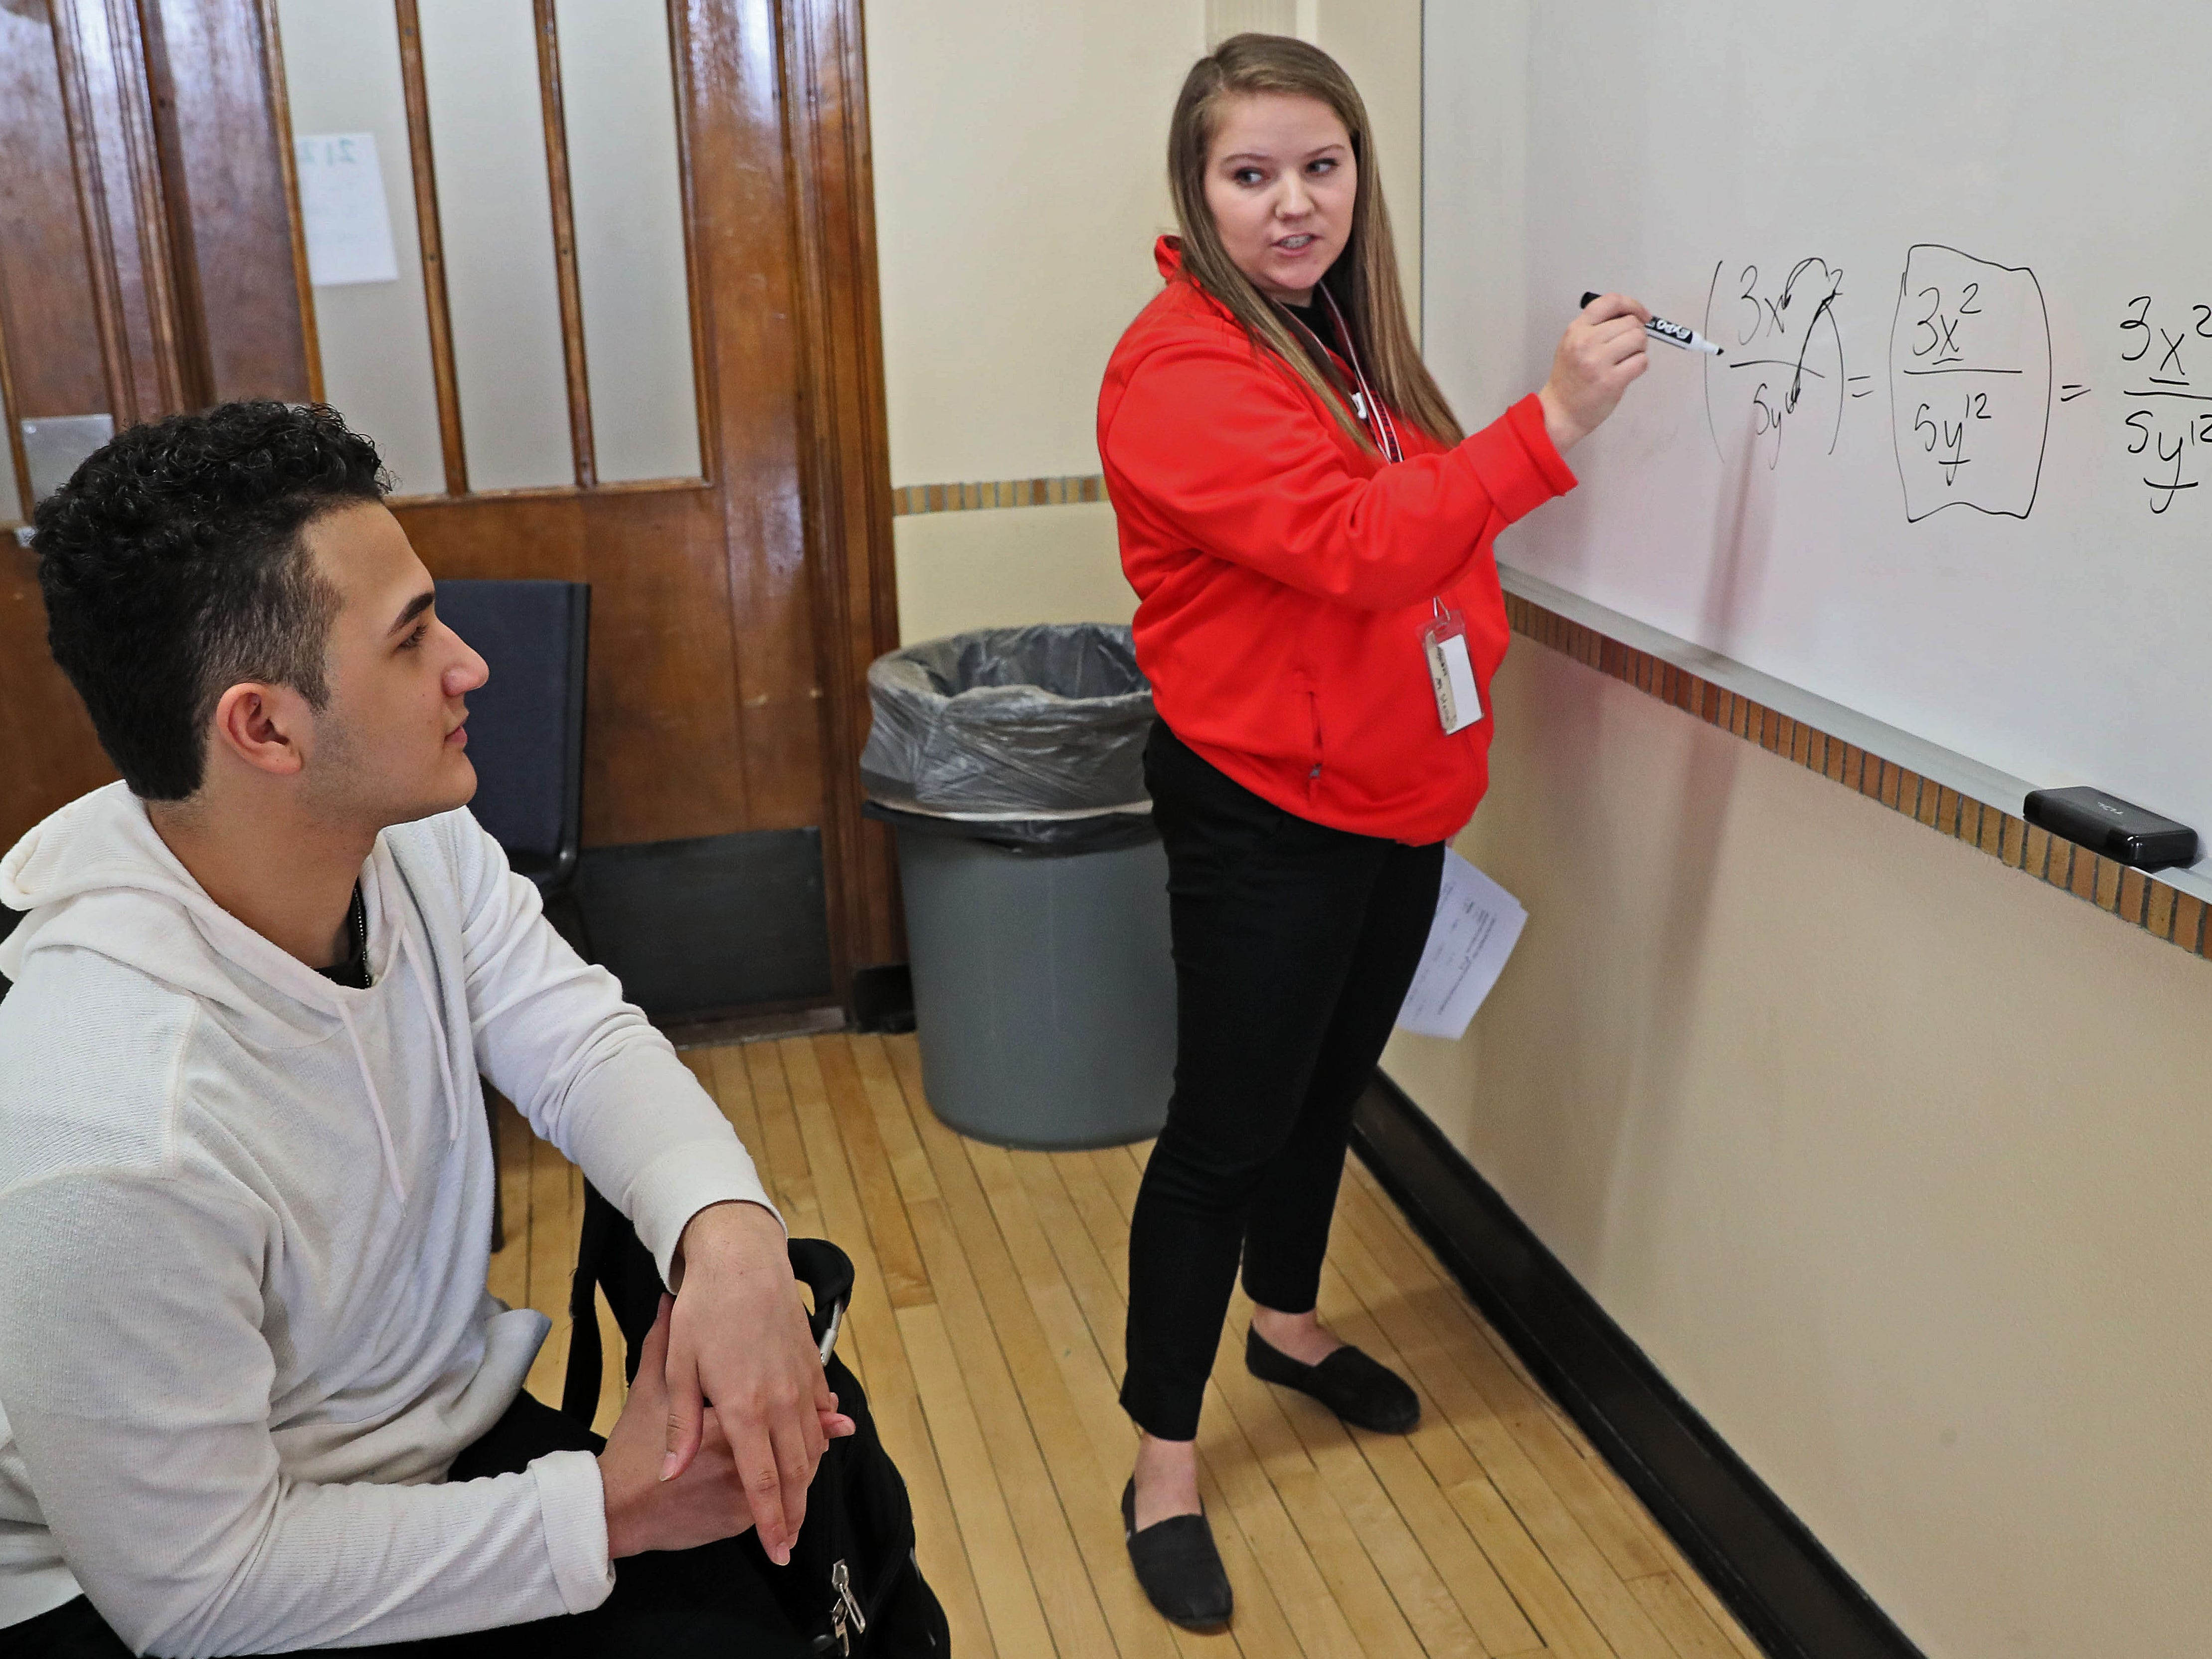 Student Daren Rosario (left), 15, works  on a math lesson presented by Stella Tomich, a City Year student success coach. City Year members work in MPS Casimir Pulaski High School in Milwaukee to teach, tutor and help students develop. They are working with ninth-graders, a key age group.